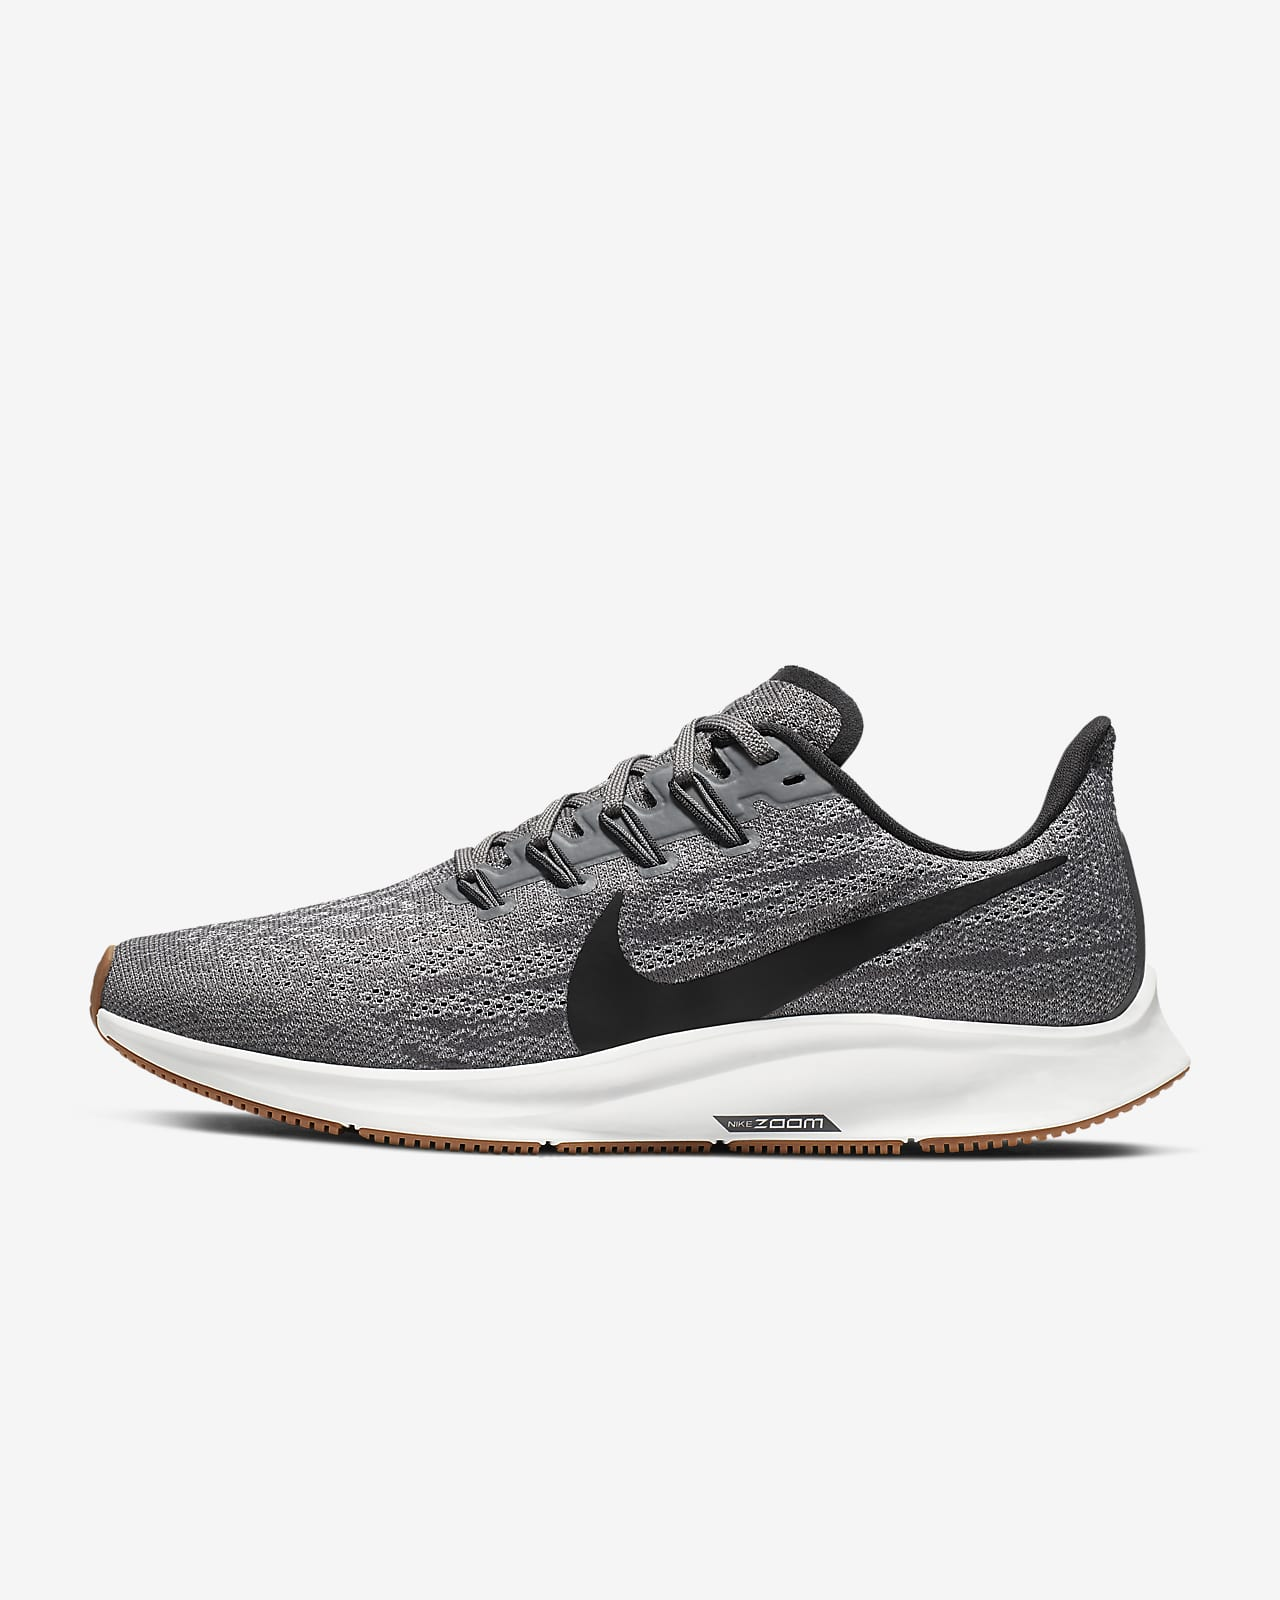 Nike Air Zoom Pegasus 36 Women's Running Shoe